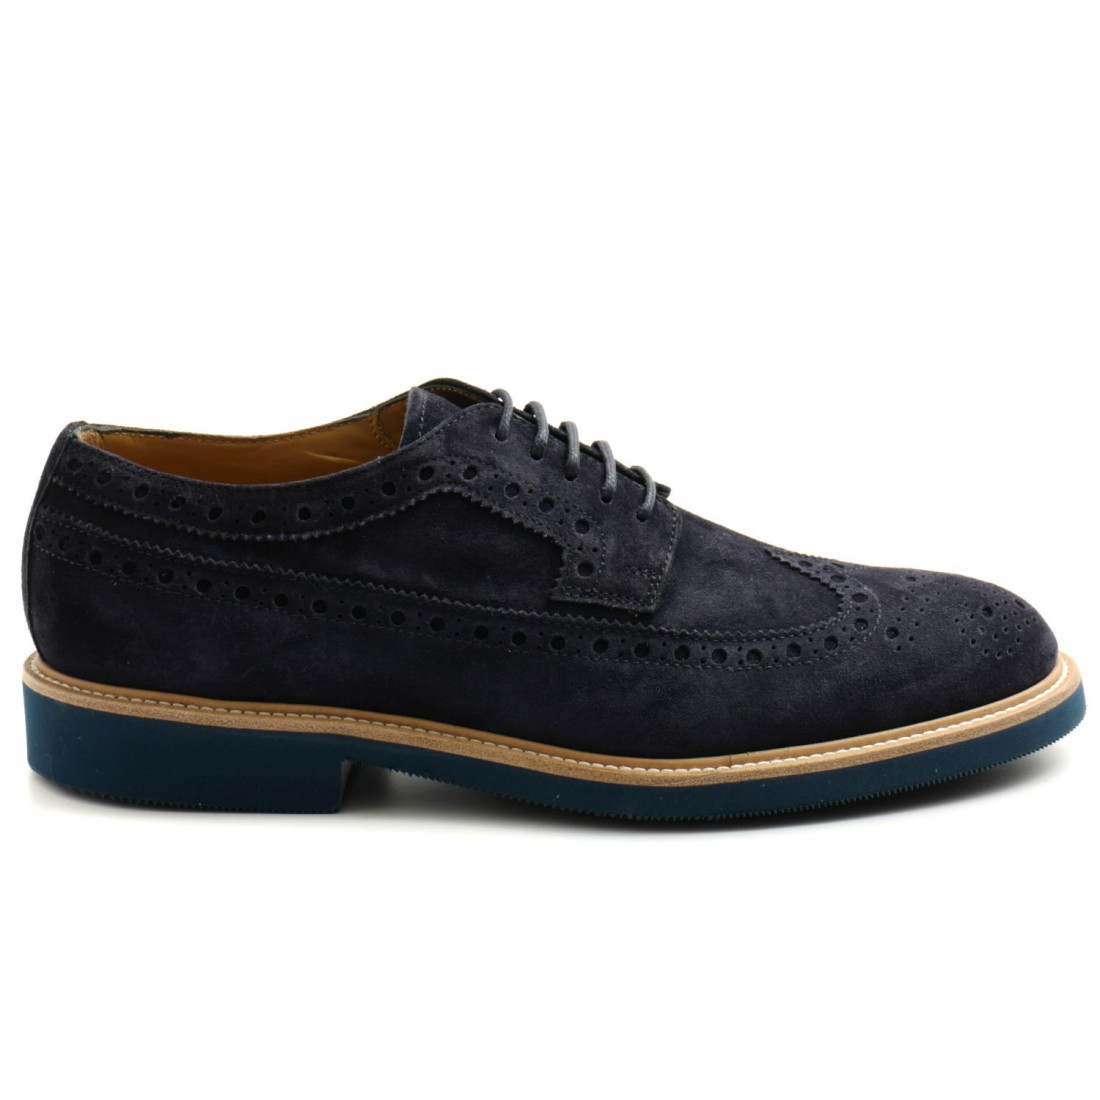 lace up man rossano bisconti 466 01softy blu 501 8467